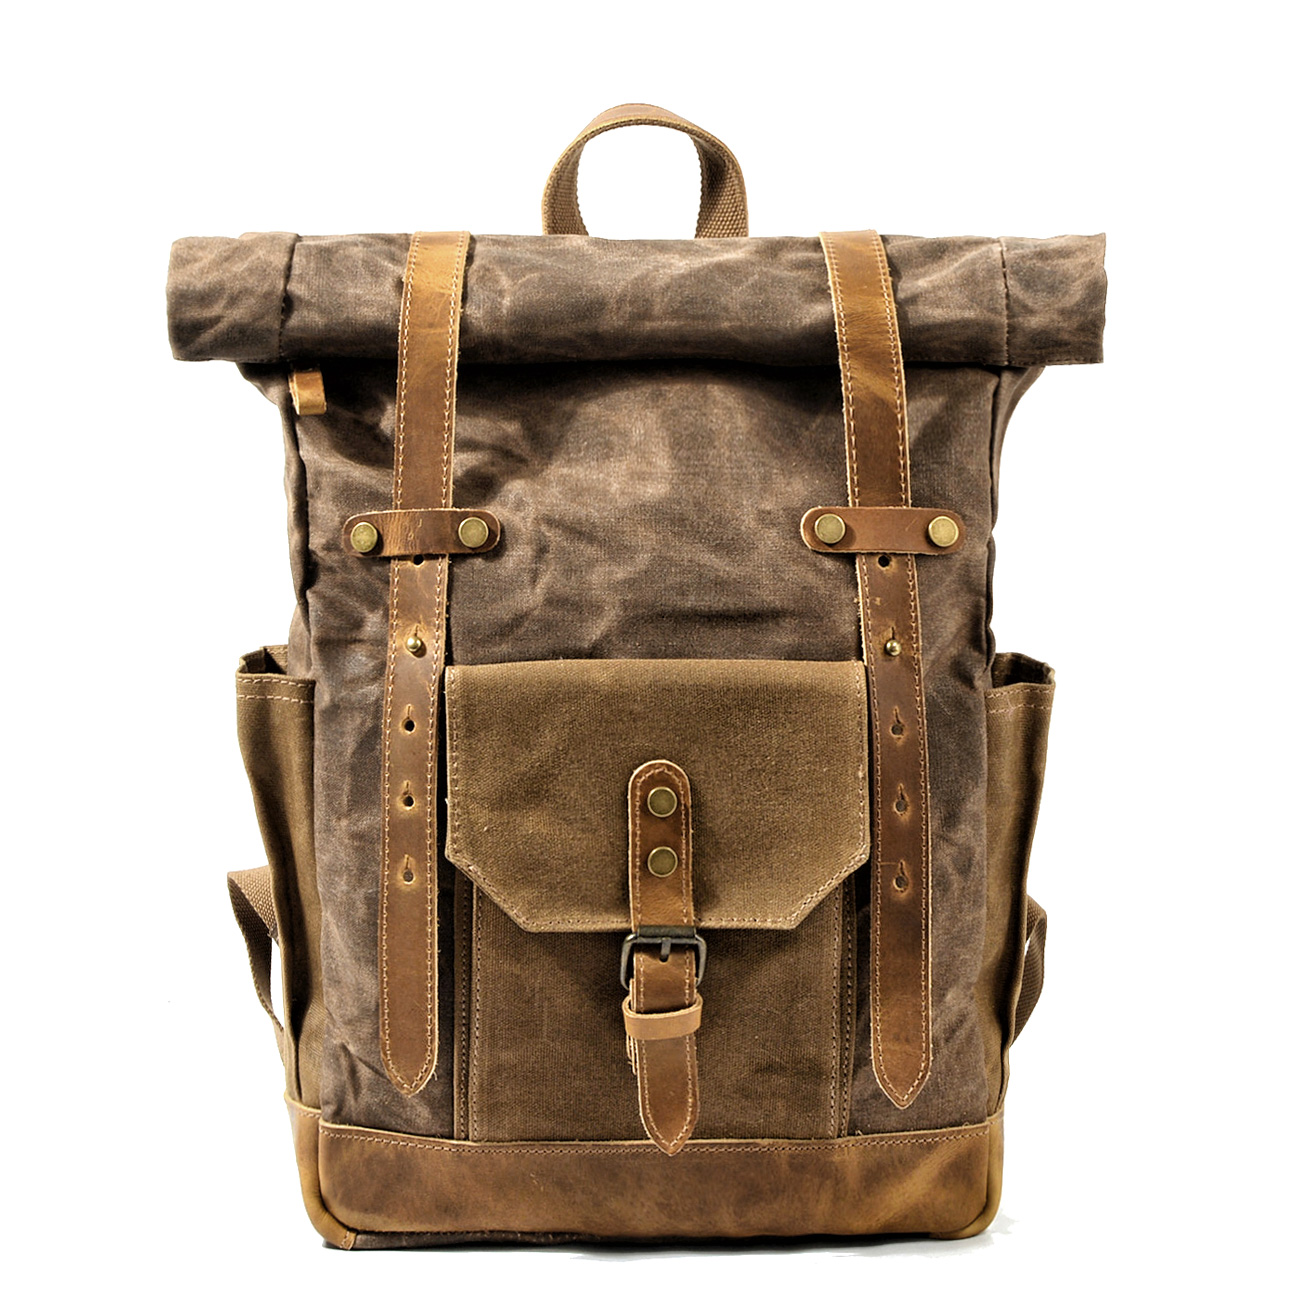 MUCHUAN Vintage Oil Waxed Canvas Leather Backpack Large Capacity Teenager Traveling Waterproof Daypacks 14 Laptops Rucksack